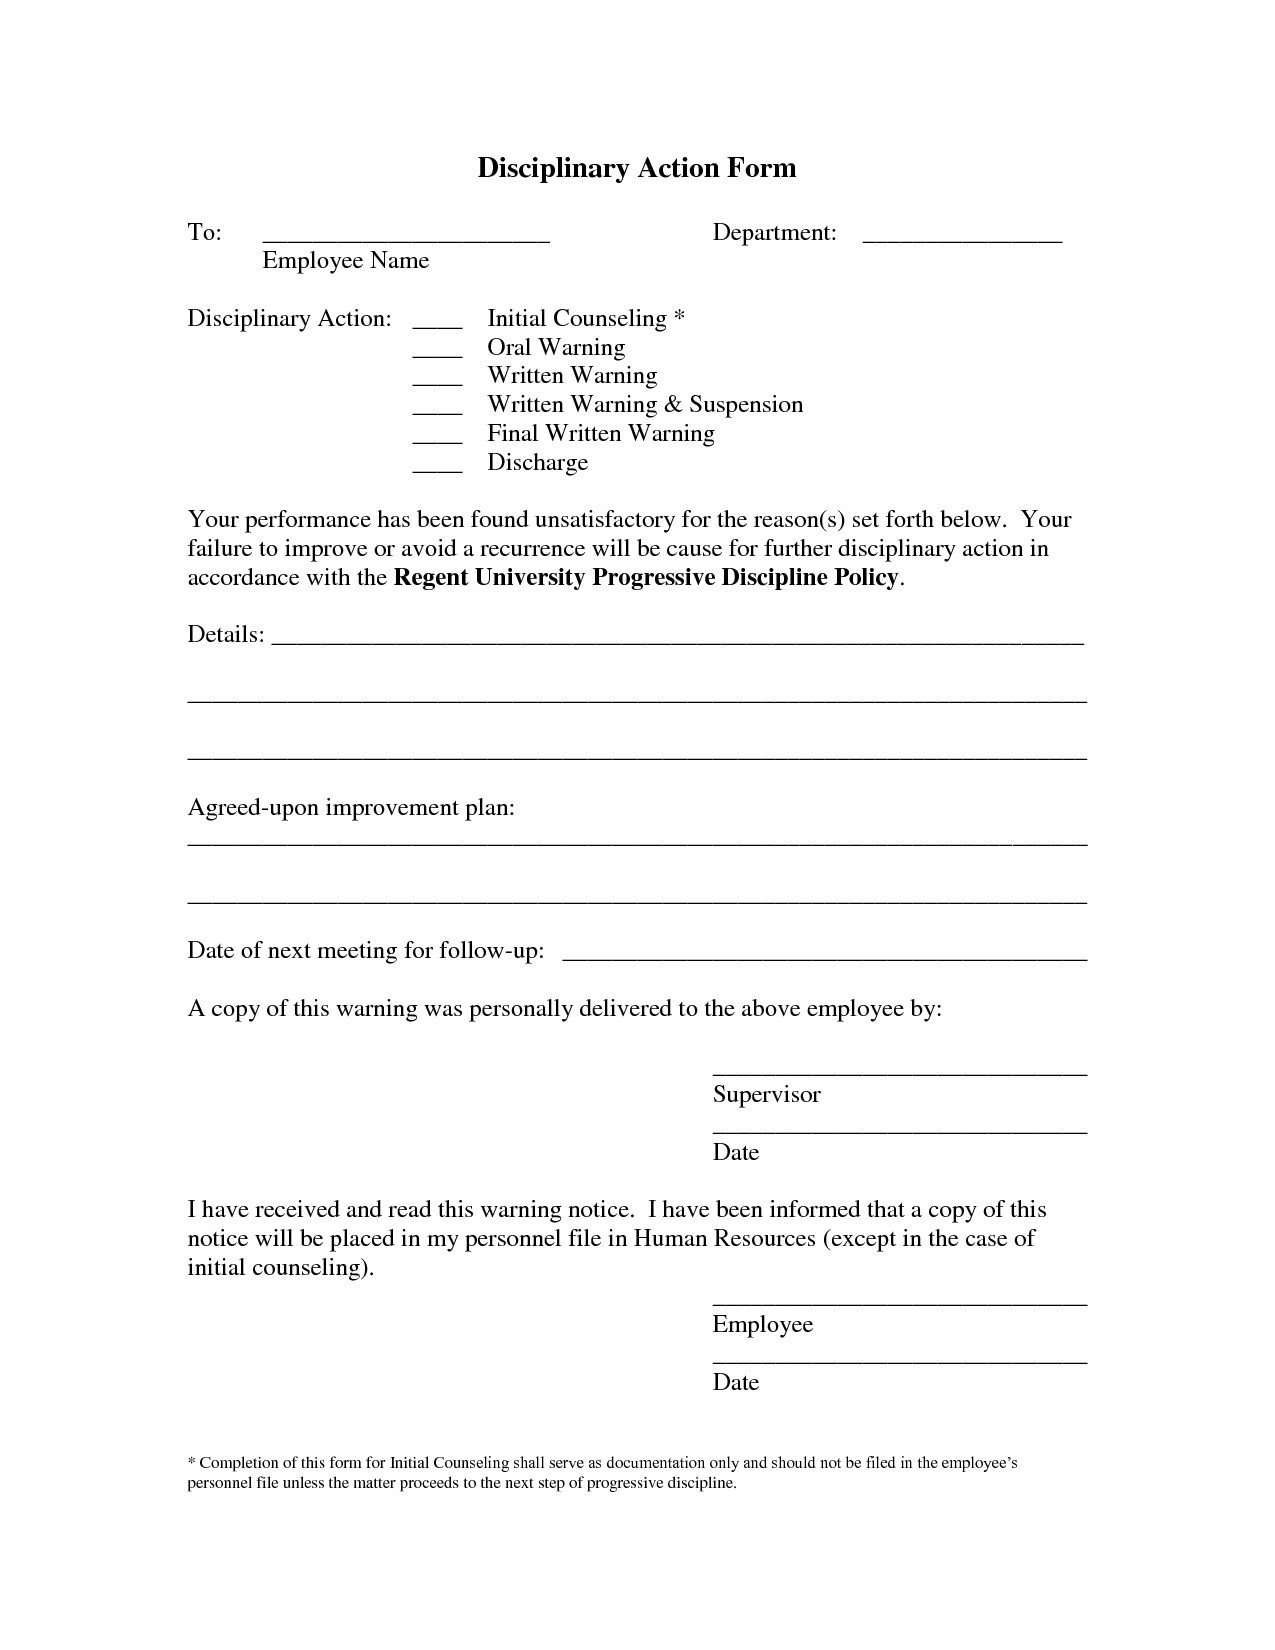 Write Up Letter for Employee Template - Employee Disciplinary Write Up Template